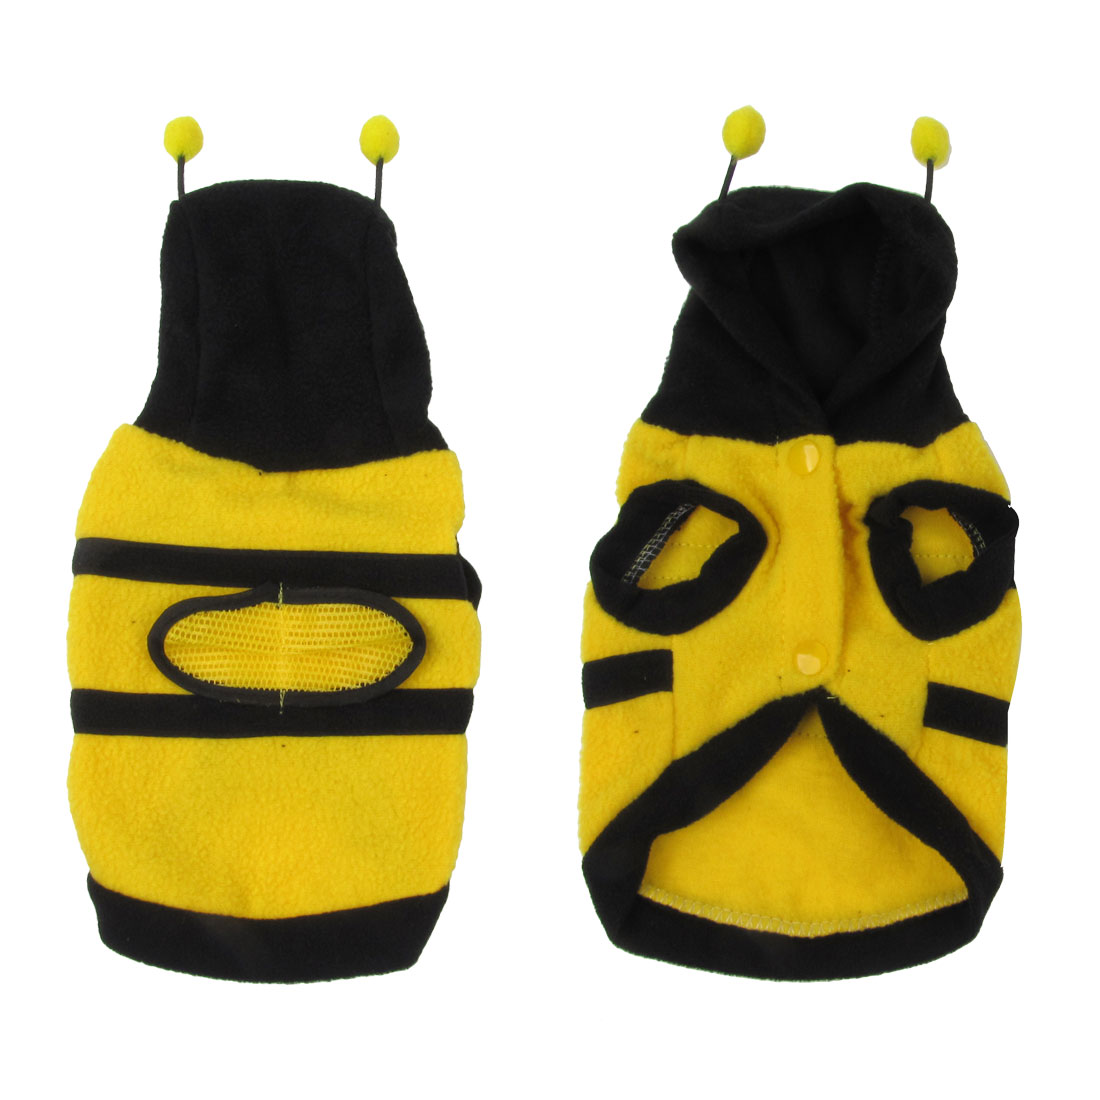 Warm Plush Bee Type Hoodie Pet Dog Cat Puppy Coat Sweater Outerwear Size S